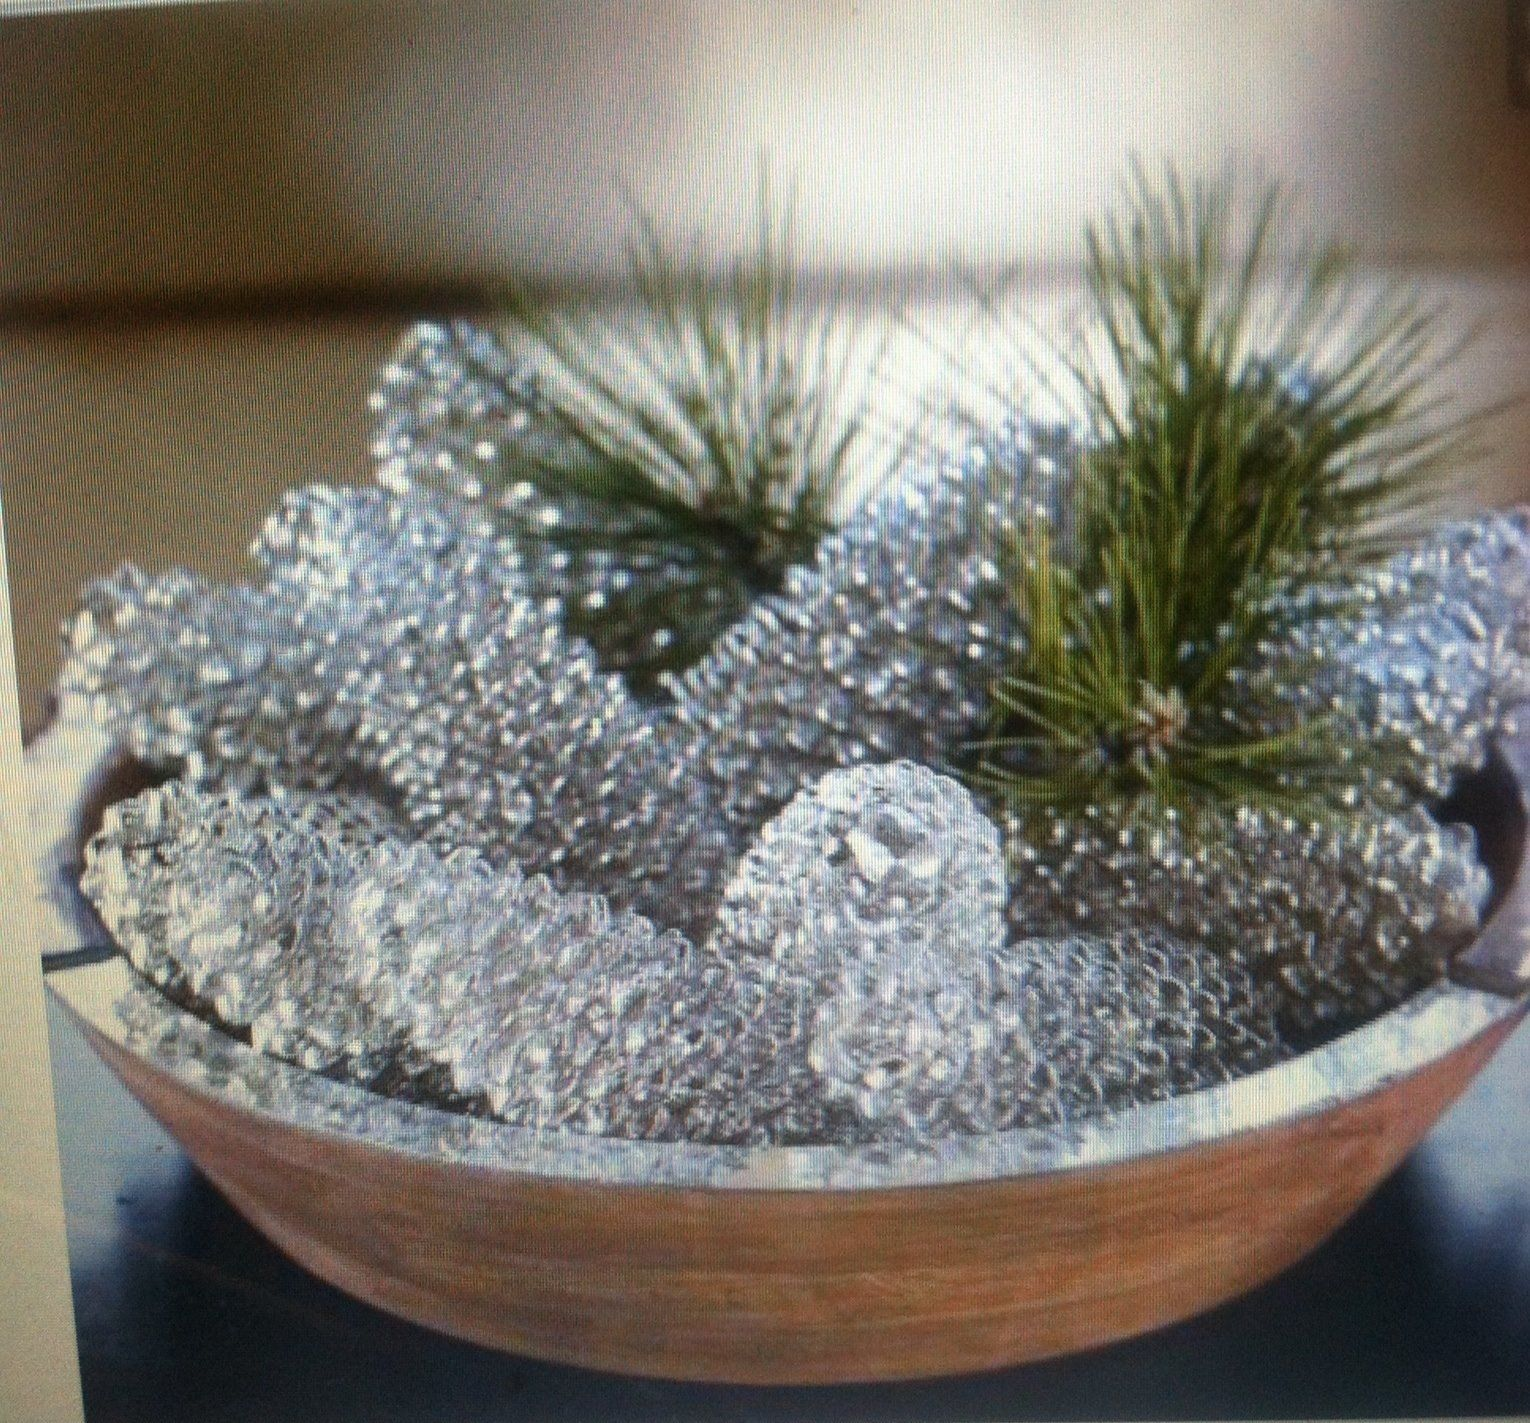 Pinecones Sprayed With Krylon Look Glass Spray Paint Pine Cone Christmas Decorations Looking Glass Spray Paint Fun Christmas Decorations